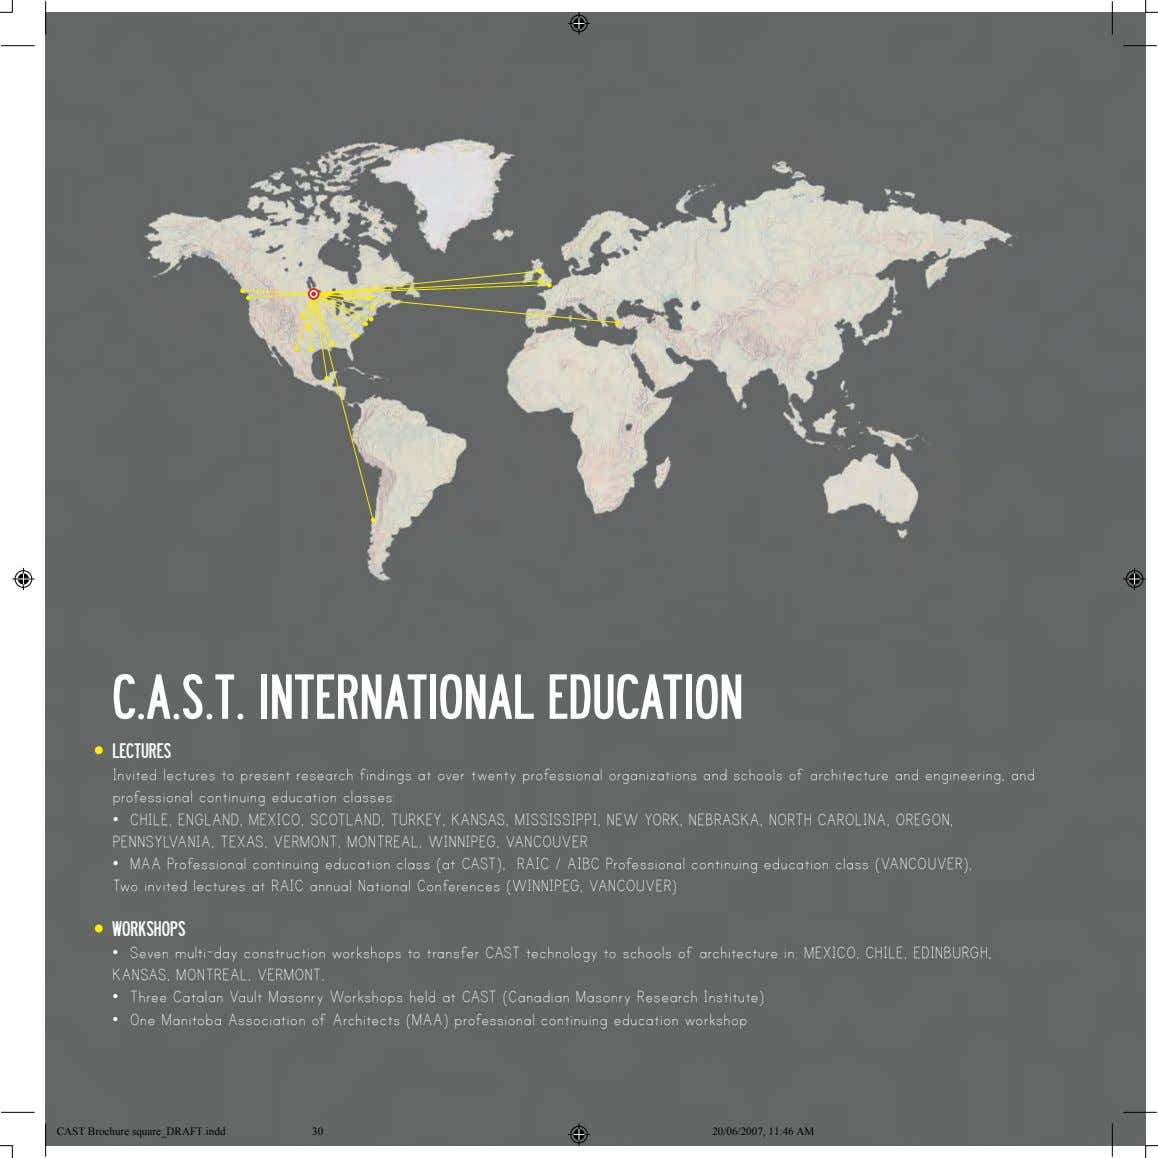 C.A.S.T. INTERNATIONAL EDUCATION LECTURES Invited lectures to present research findings at over twenty professional